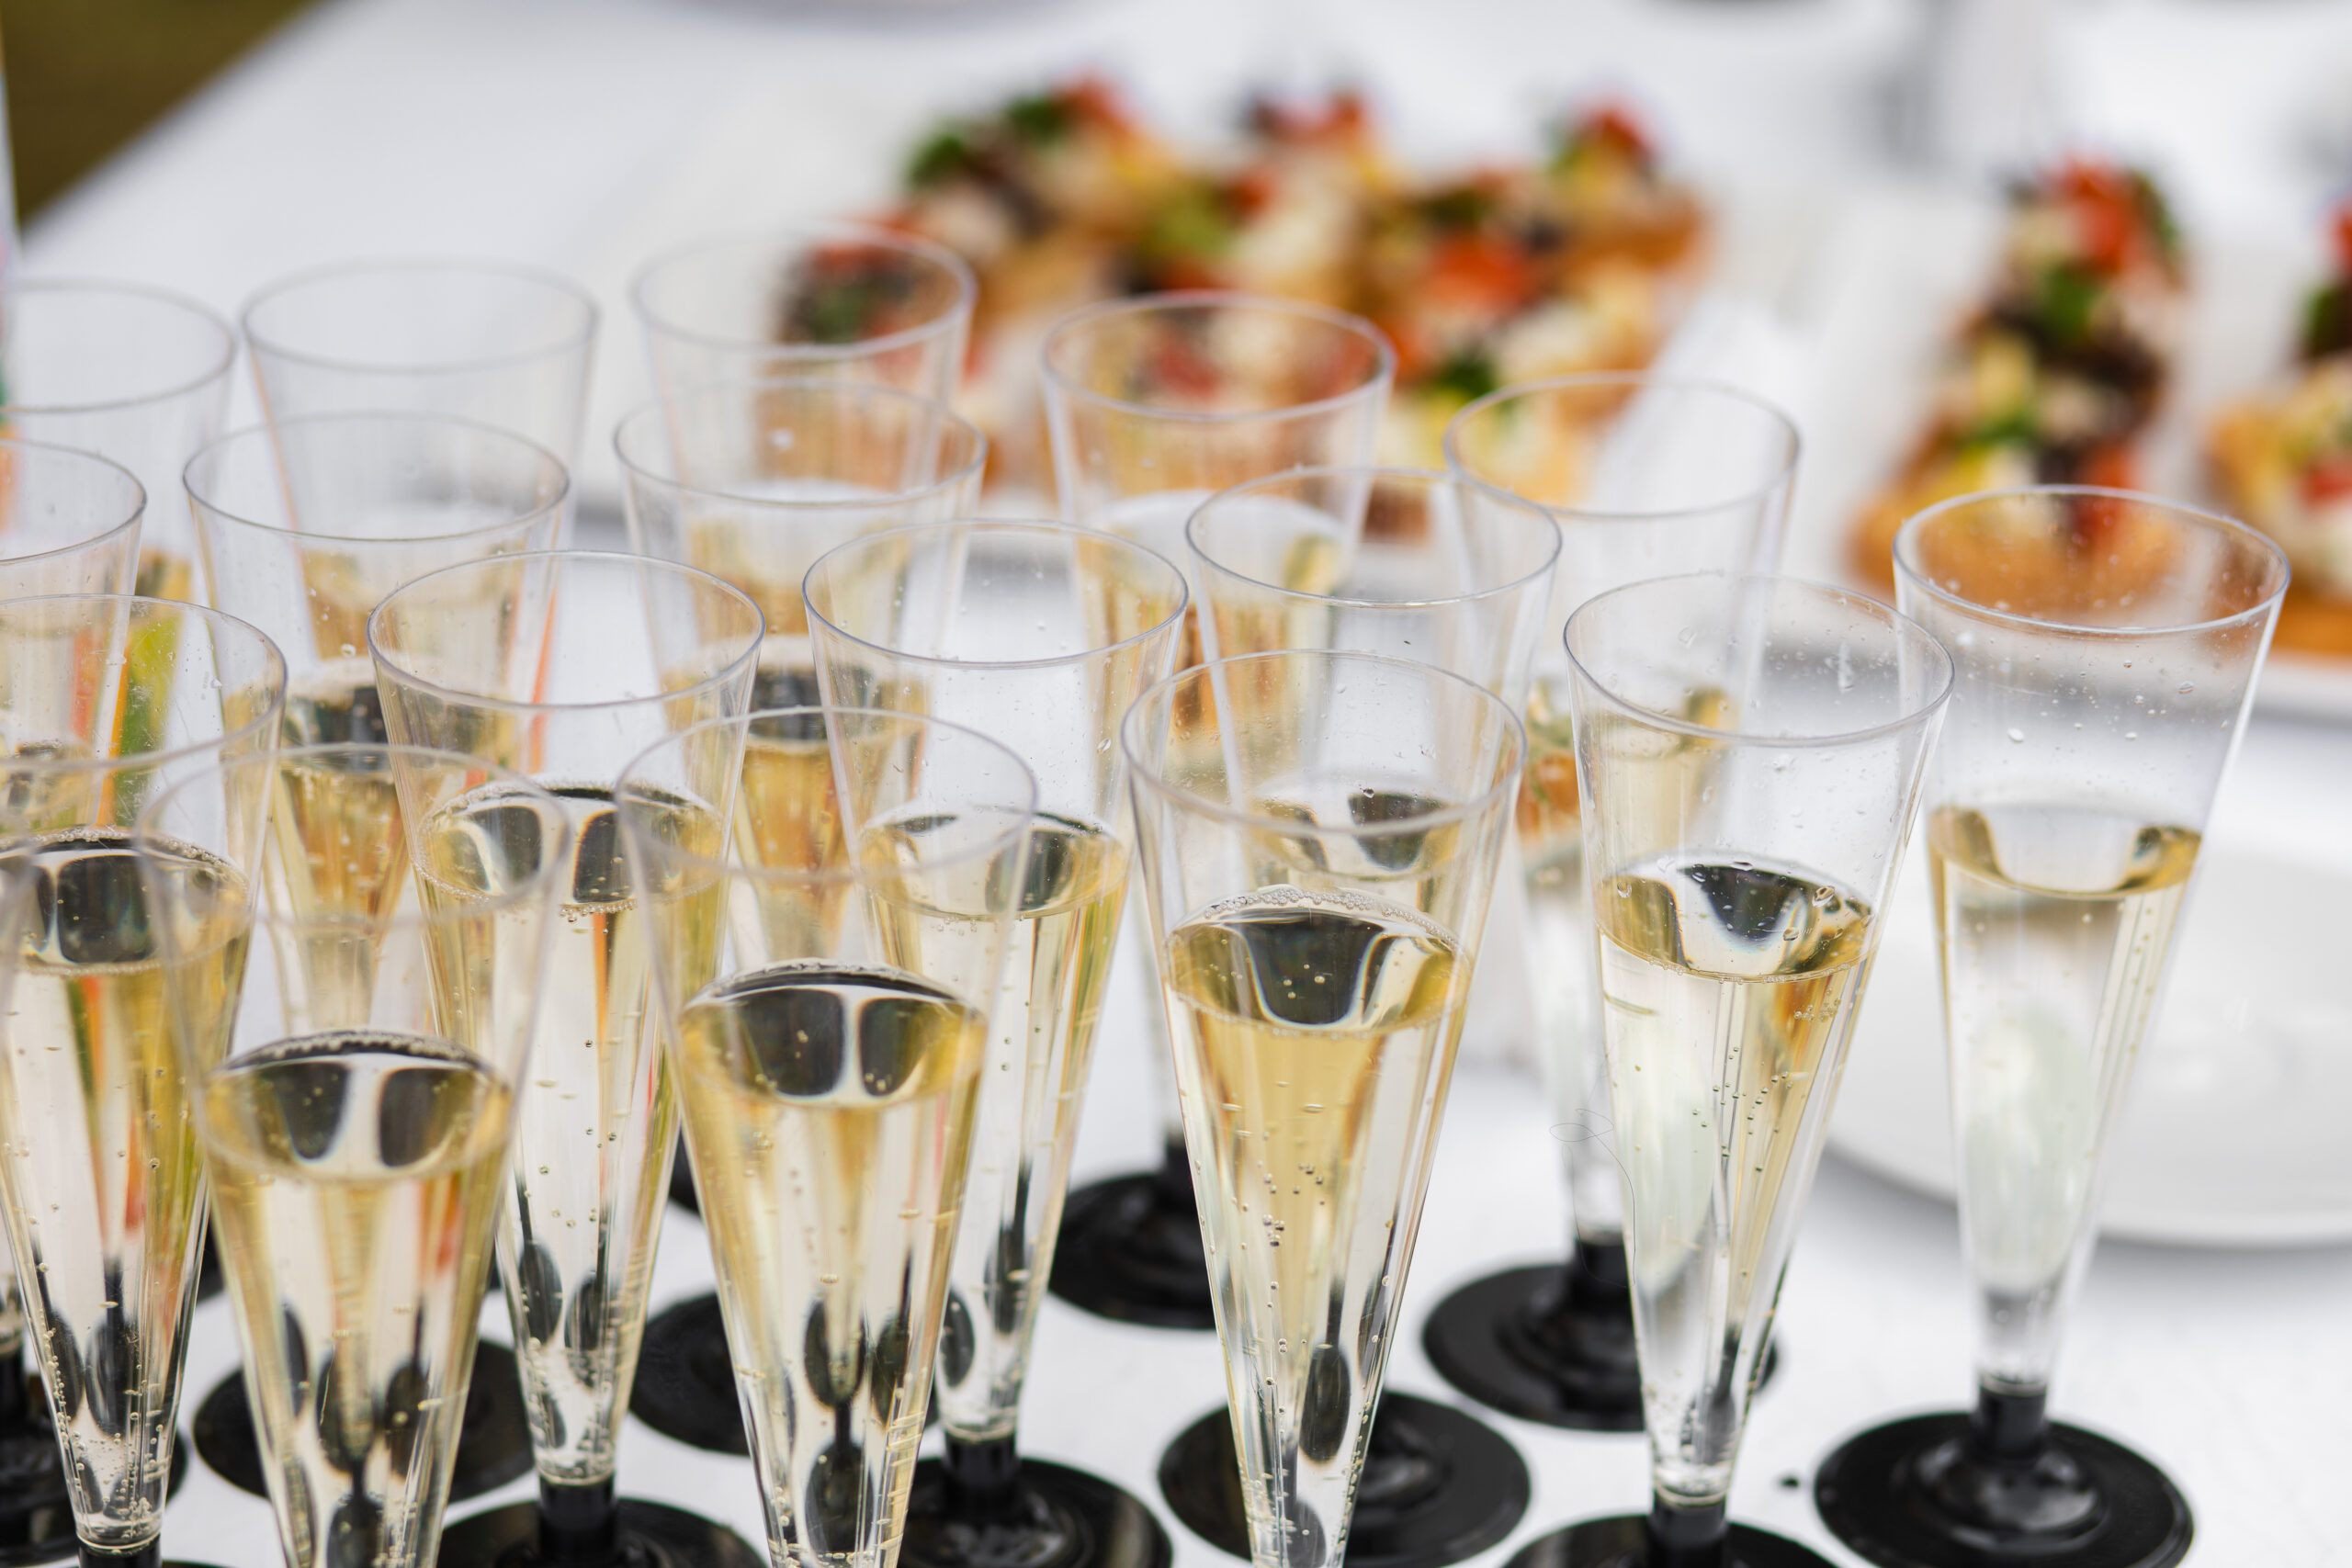 Glasses with champagne served on table near appetizers